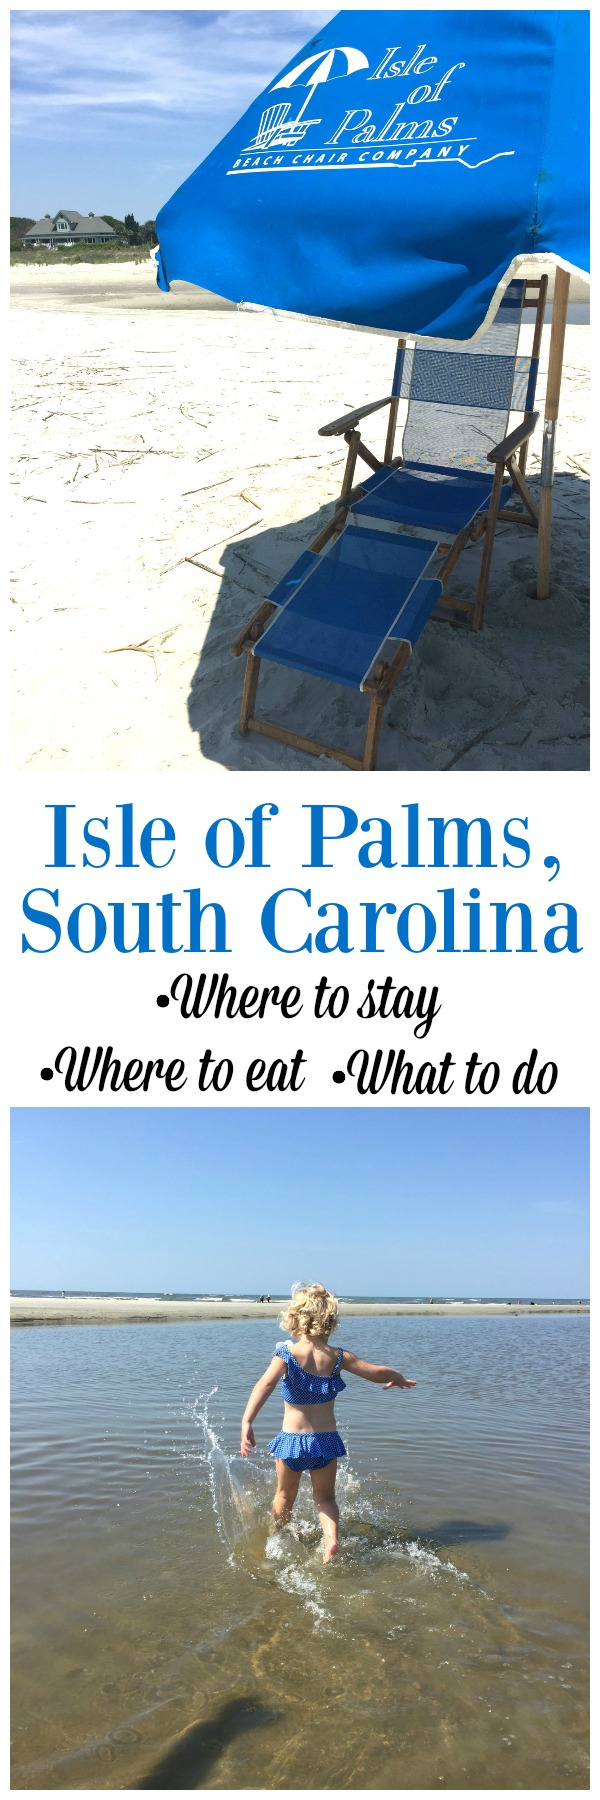 Isle of Palms South Carolina Beach | Best Beaches in South Carolina | Isle of Palms South Carolina Restaurants | What to Do in Isle of Palms